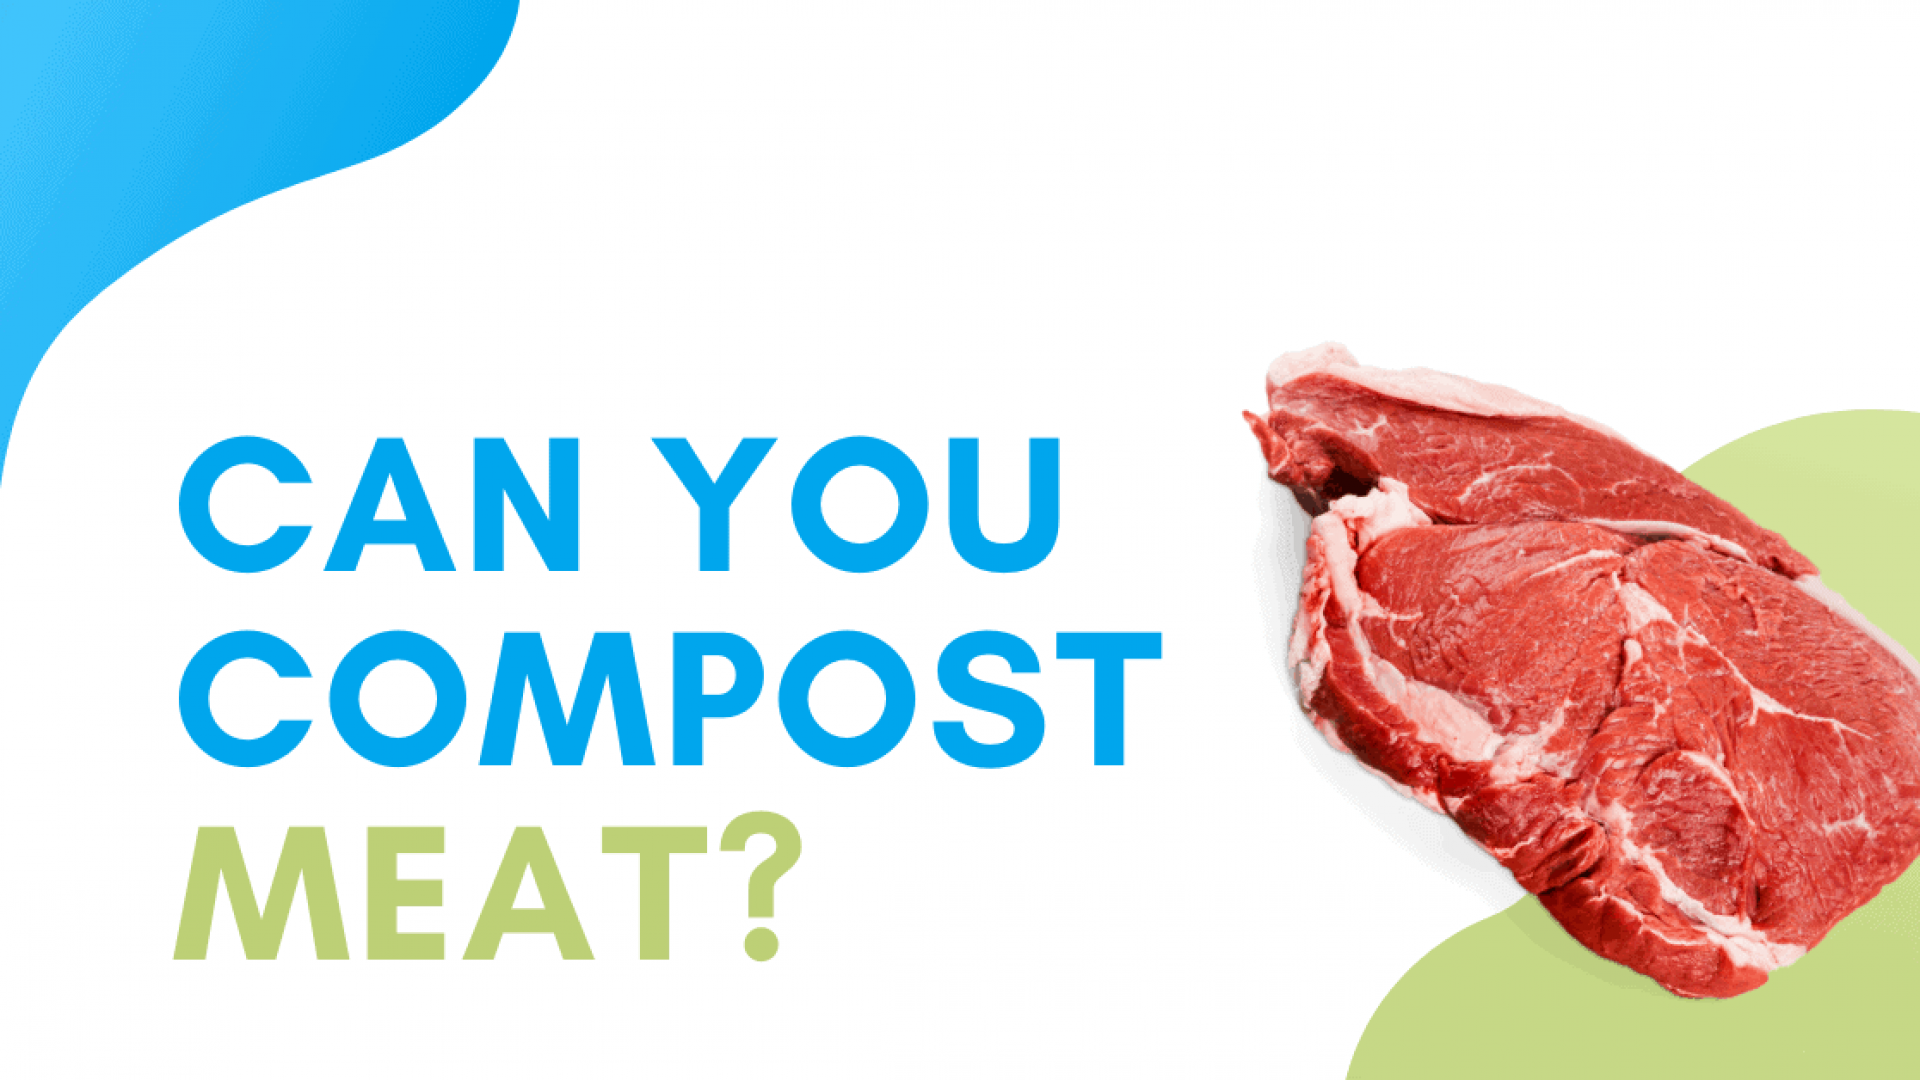 Can You Compost Meat?